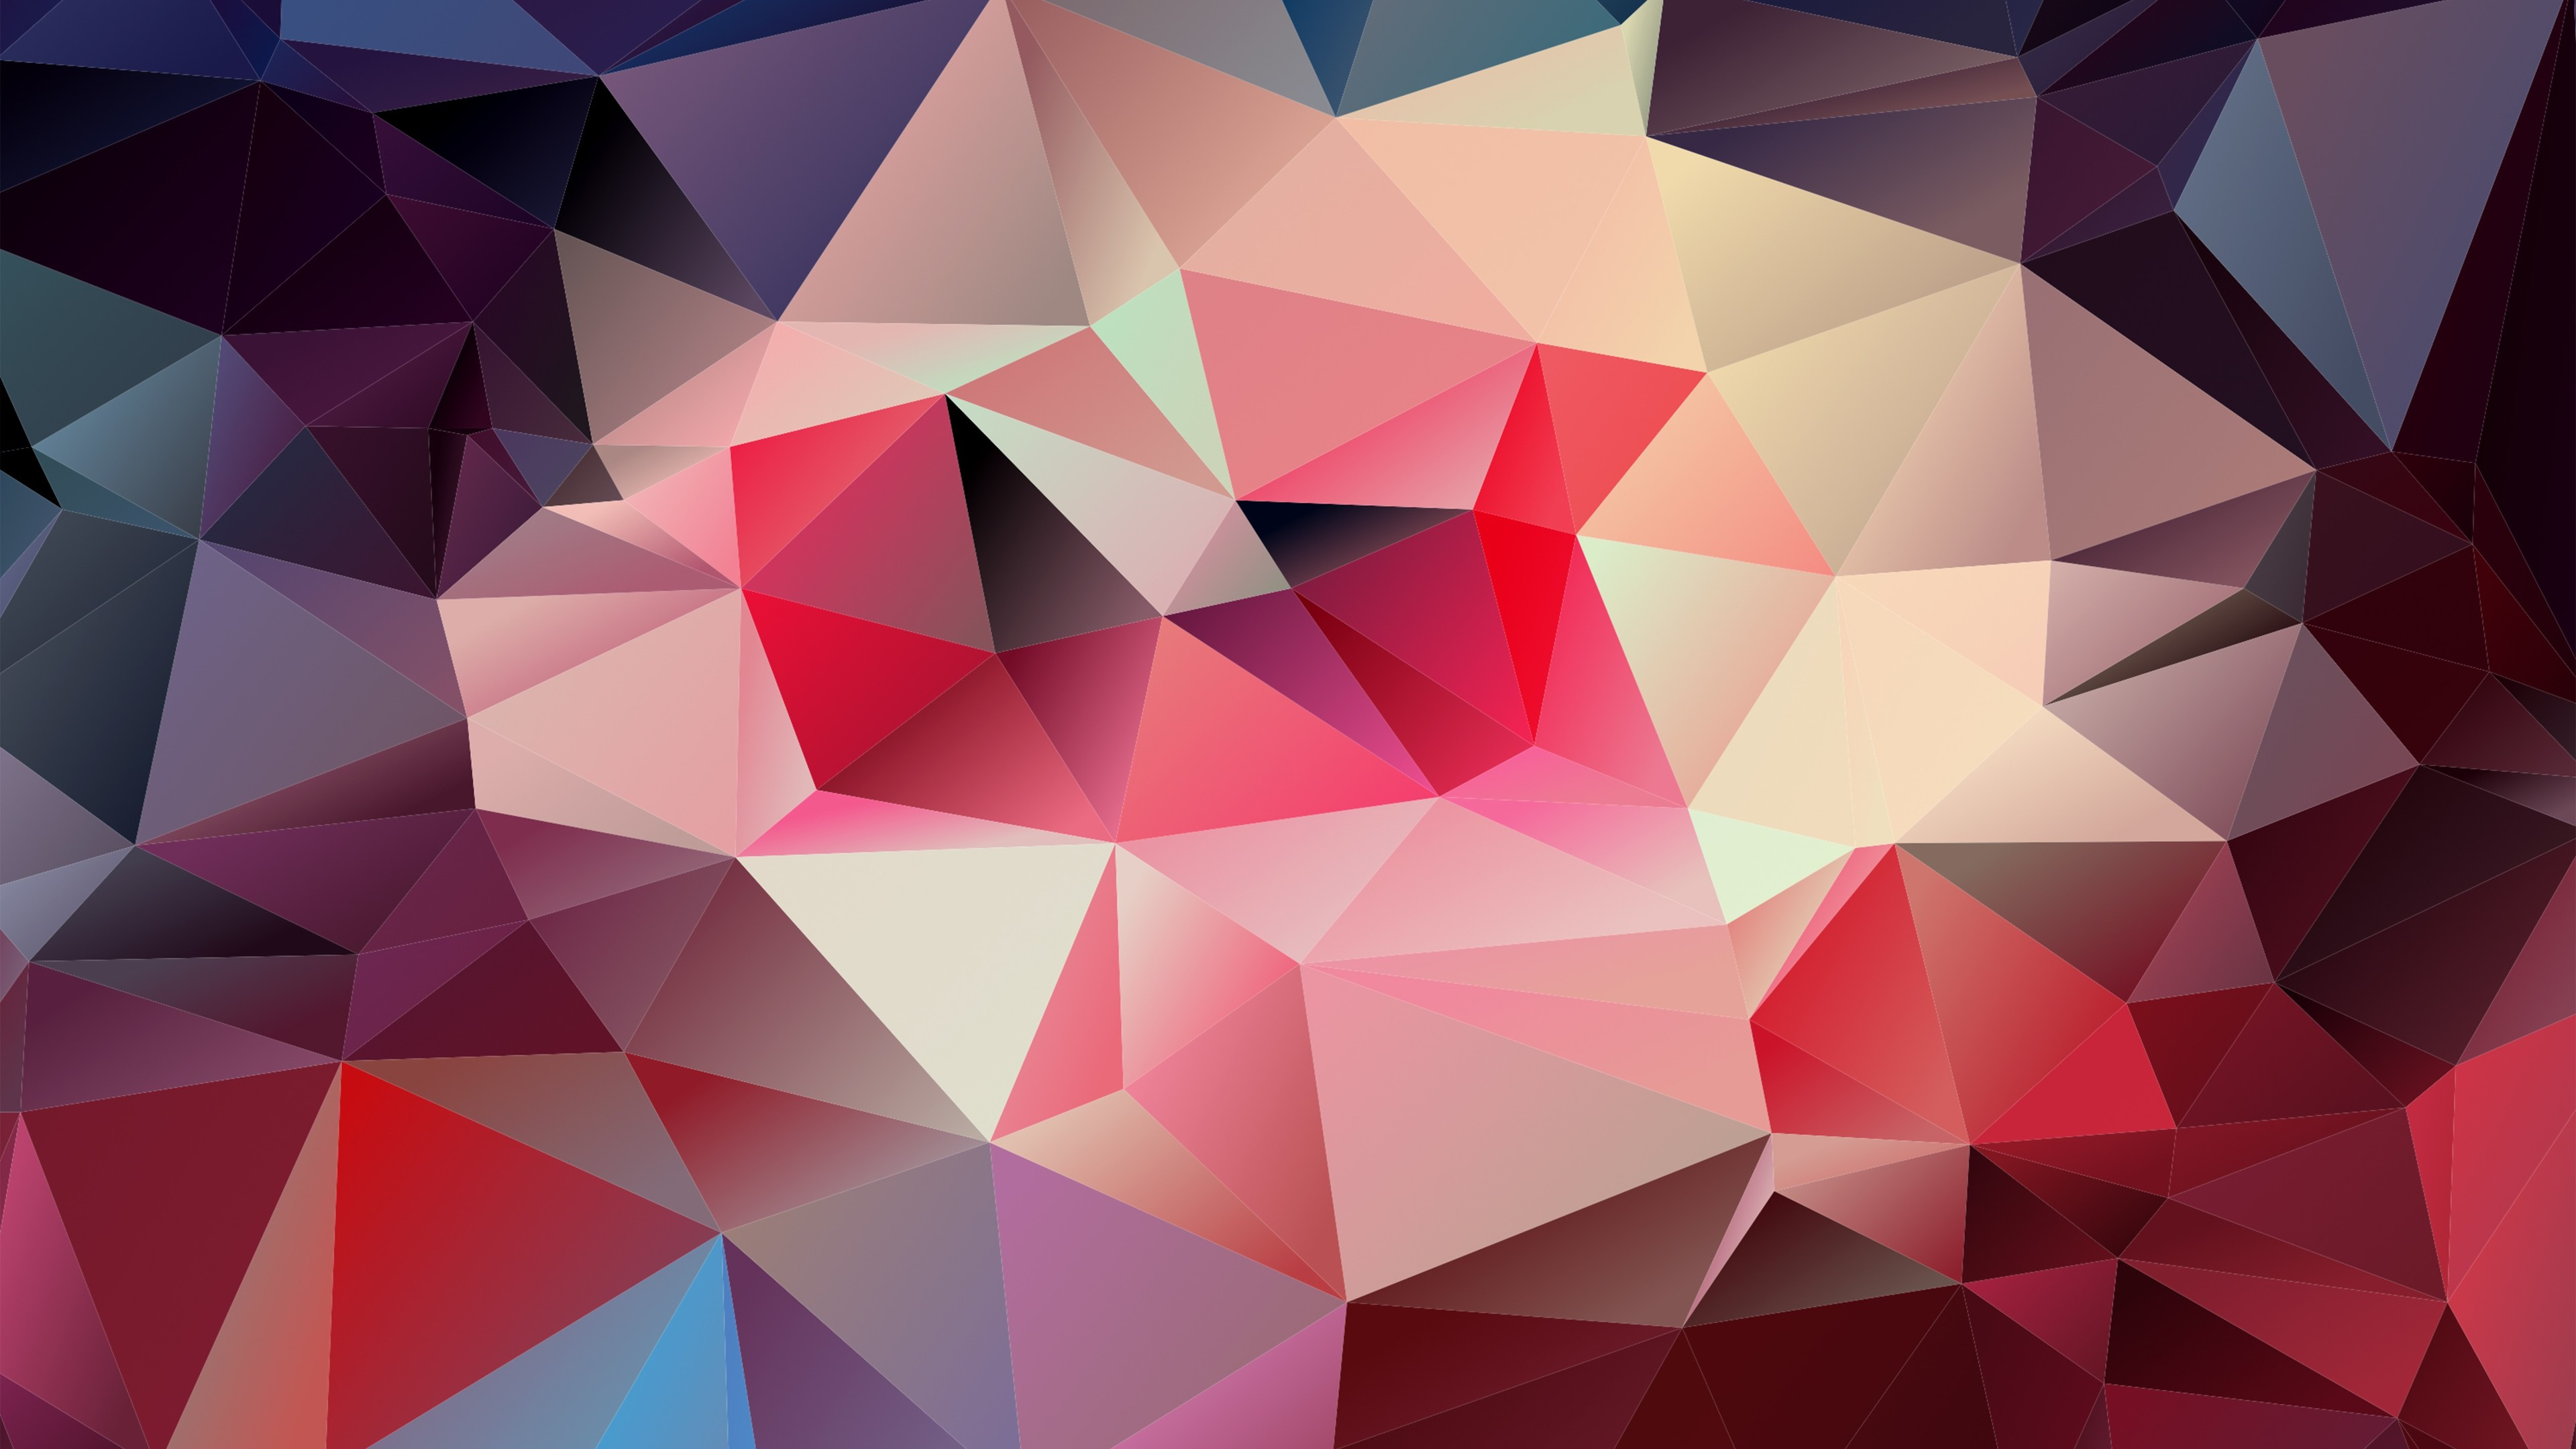 pattern digital art 4k 1540748638 - Pattern Digital Art 4k - pattern wallpapers, design wallpapers, abstract wallpapers